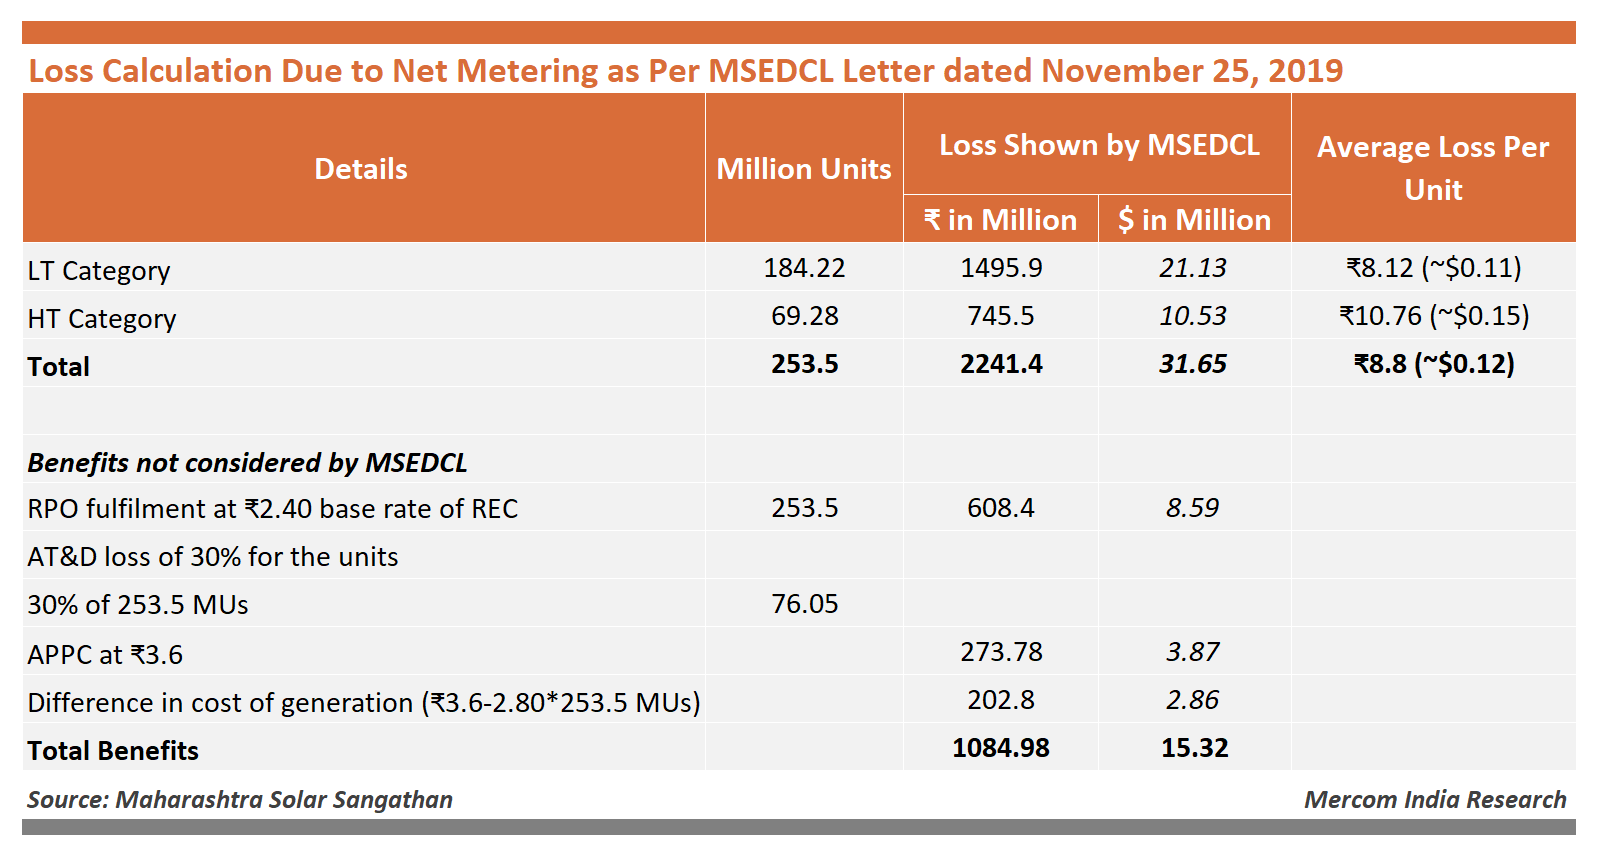 Loss Calculation Due to Net Metering as Per MSEDCL Letter dated November 25, 2019